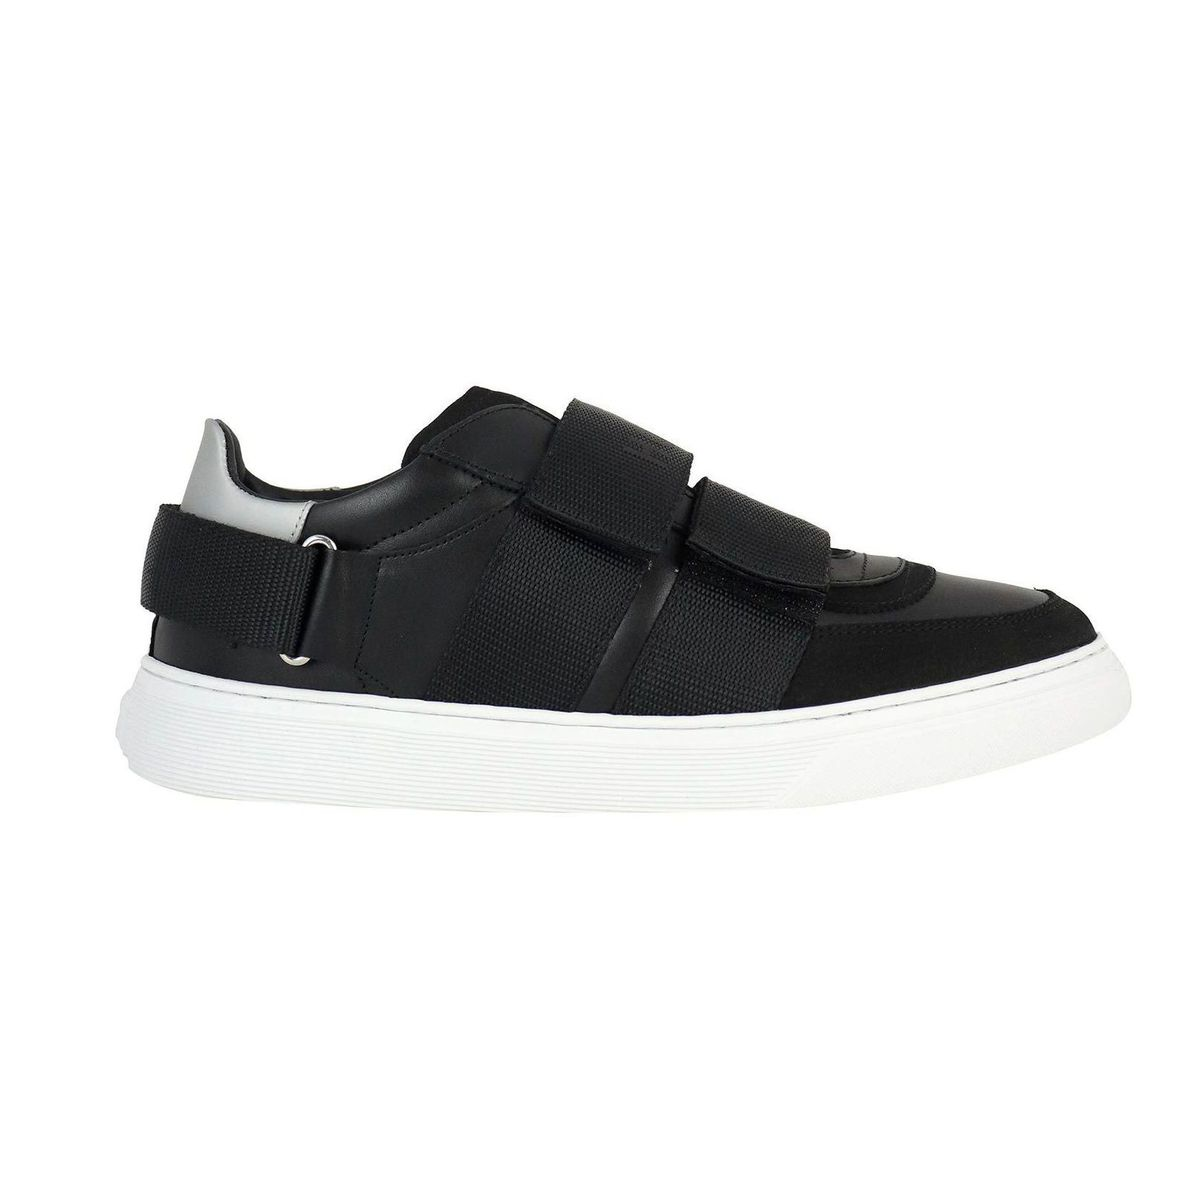 Sneakers in leather with contrasting tears on the 365 bottom Black Hogan